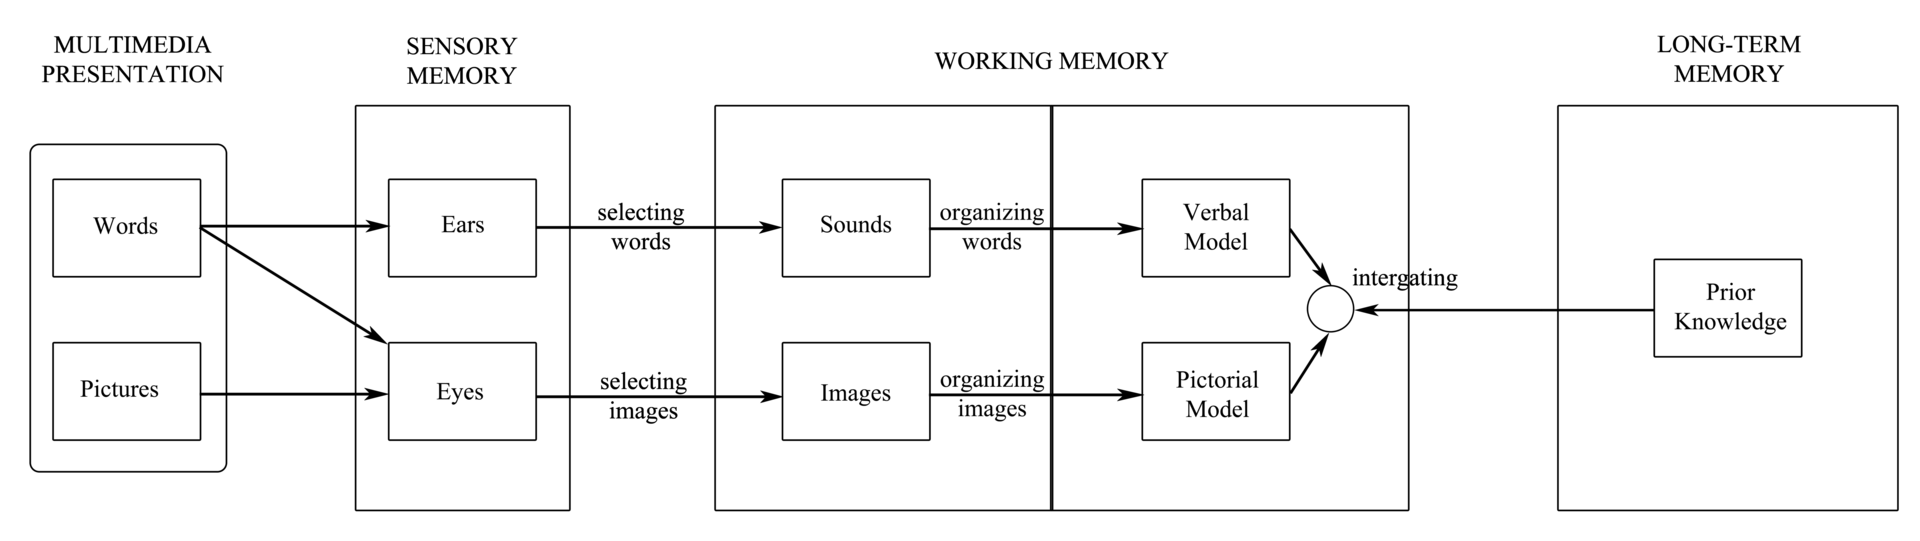 Modell der Cognitive Theory of Multimedia Learning